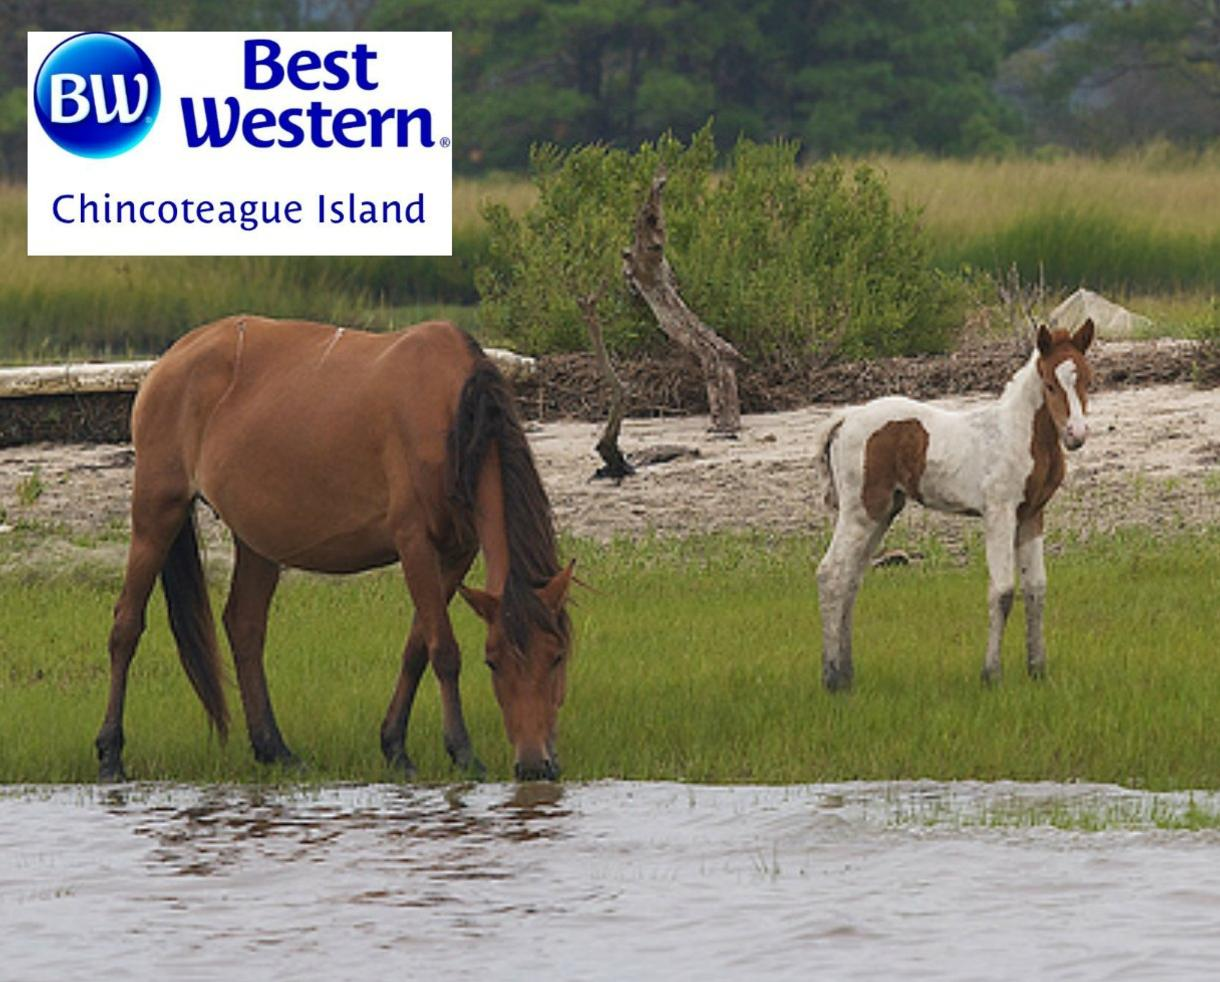 2-Night Chincoteague Island, VA Escape with Hot Breakfast Daily - Valid May 28 - June 28, 2018